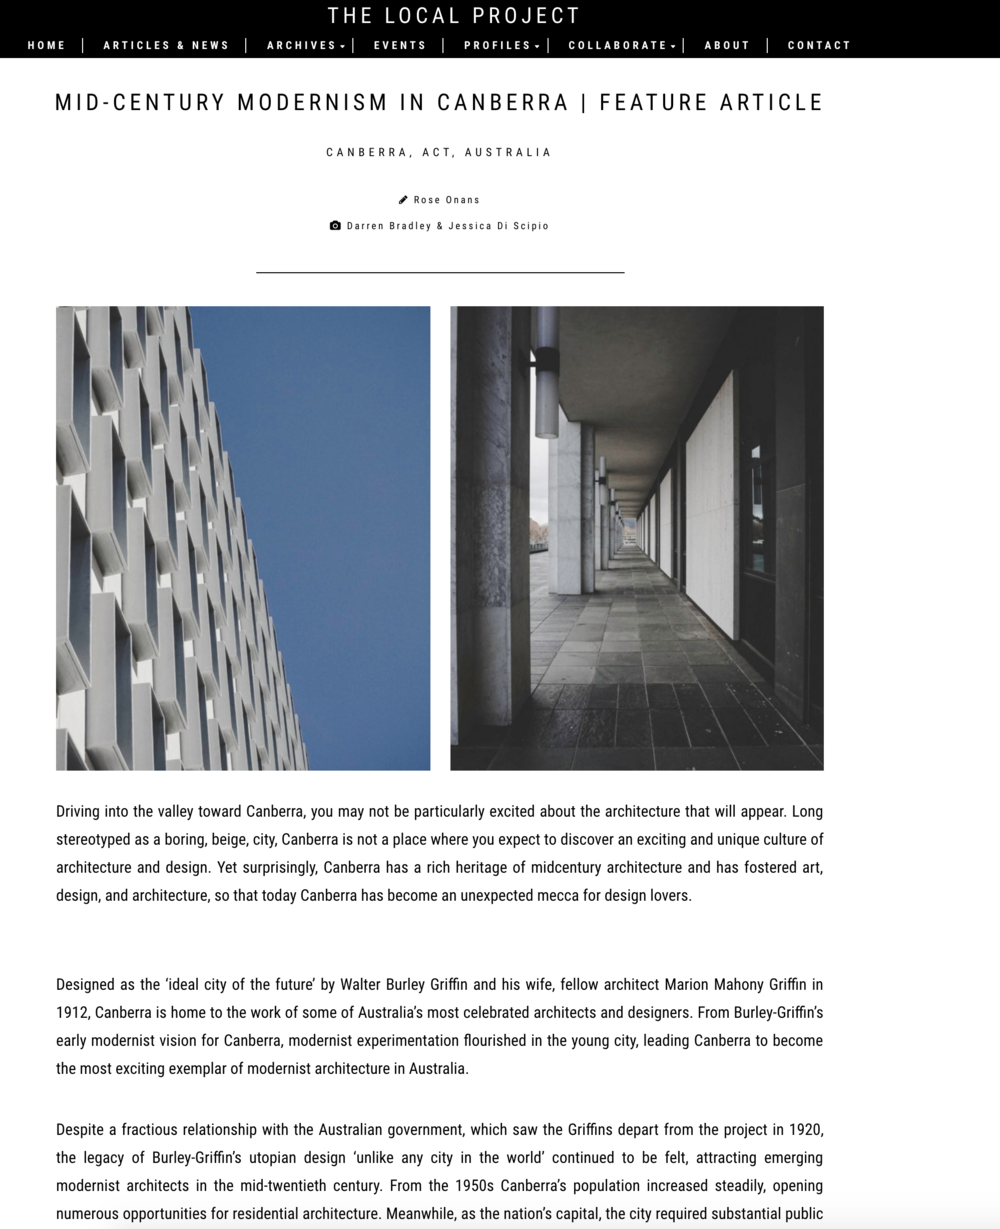 DESIGN CANBERRA - THE LOCAL PROJECT - ARCHITECTURE  11 OCTOBER, 20171.png